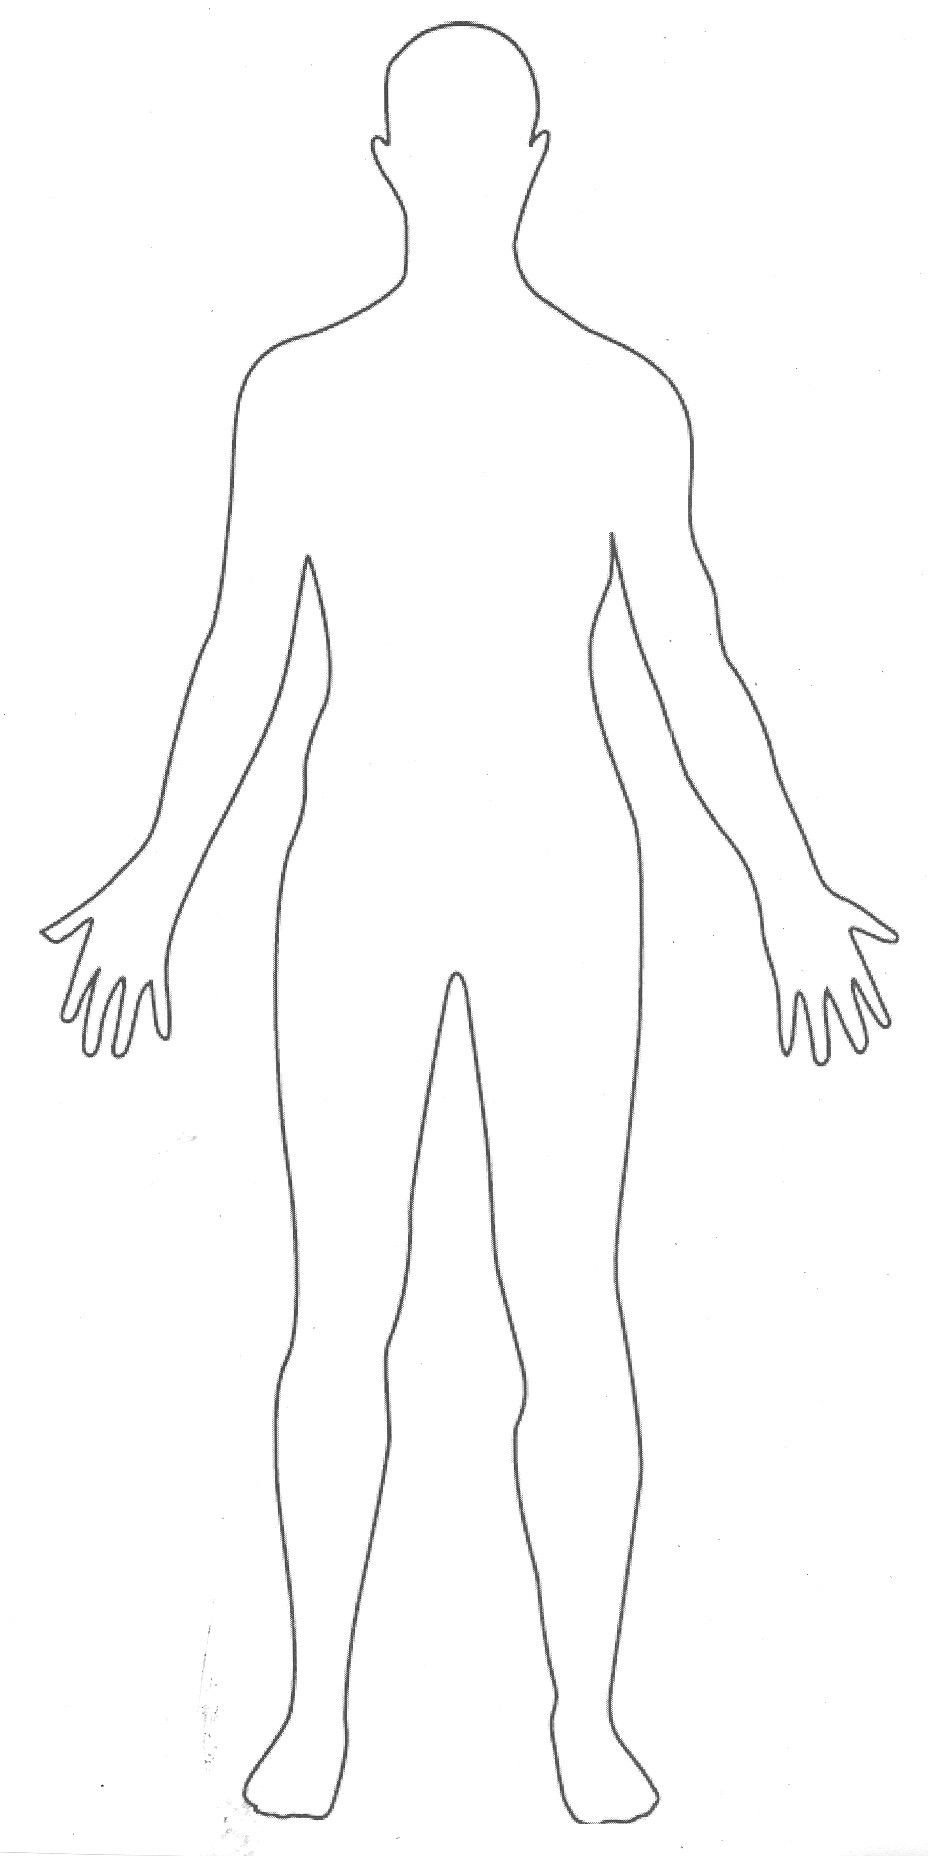 Human Body Outline Drawing Outline Picture Parts Of the Human Body Great for